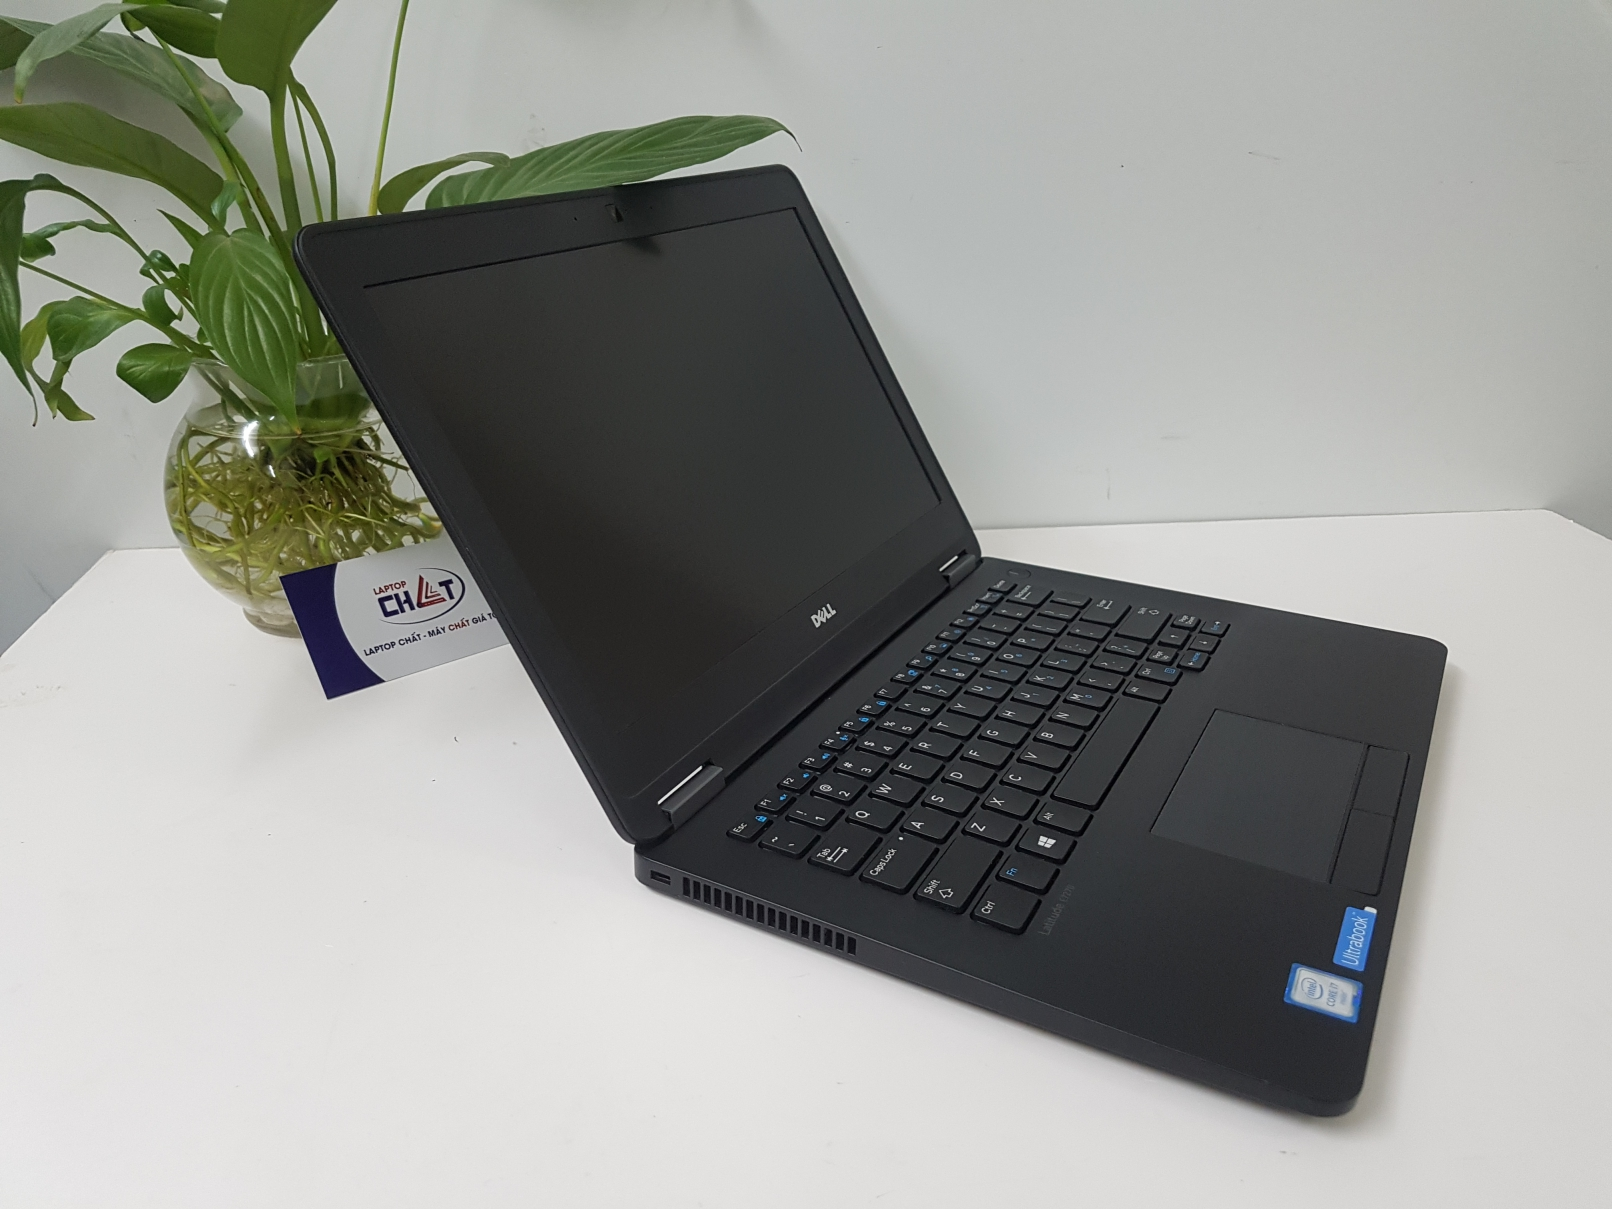 Dell Latitude E7270 core i7-1